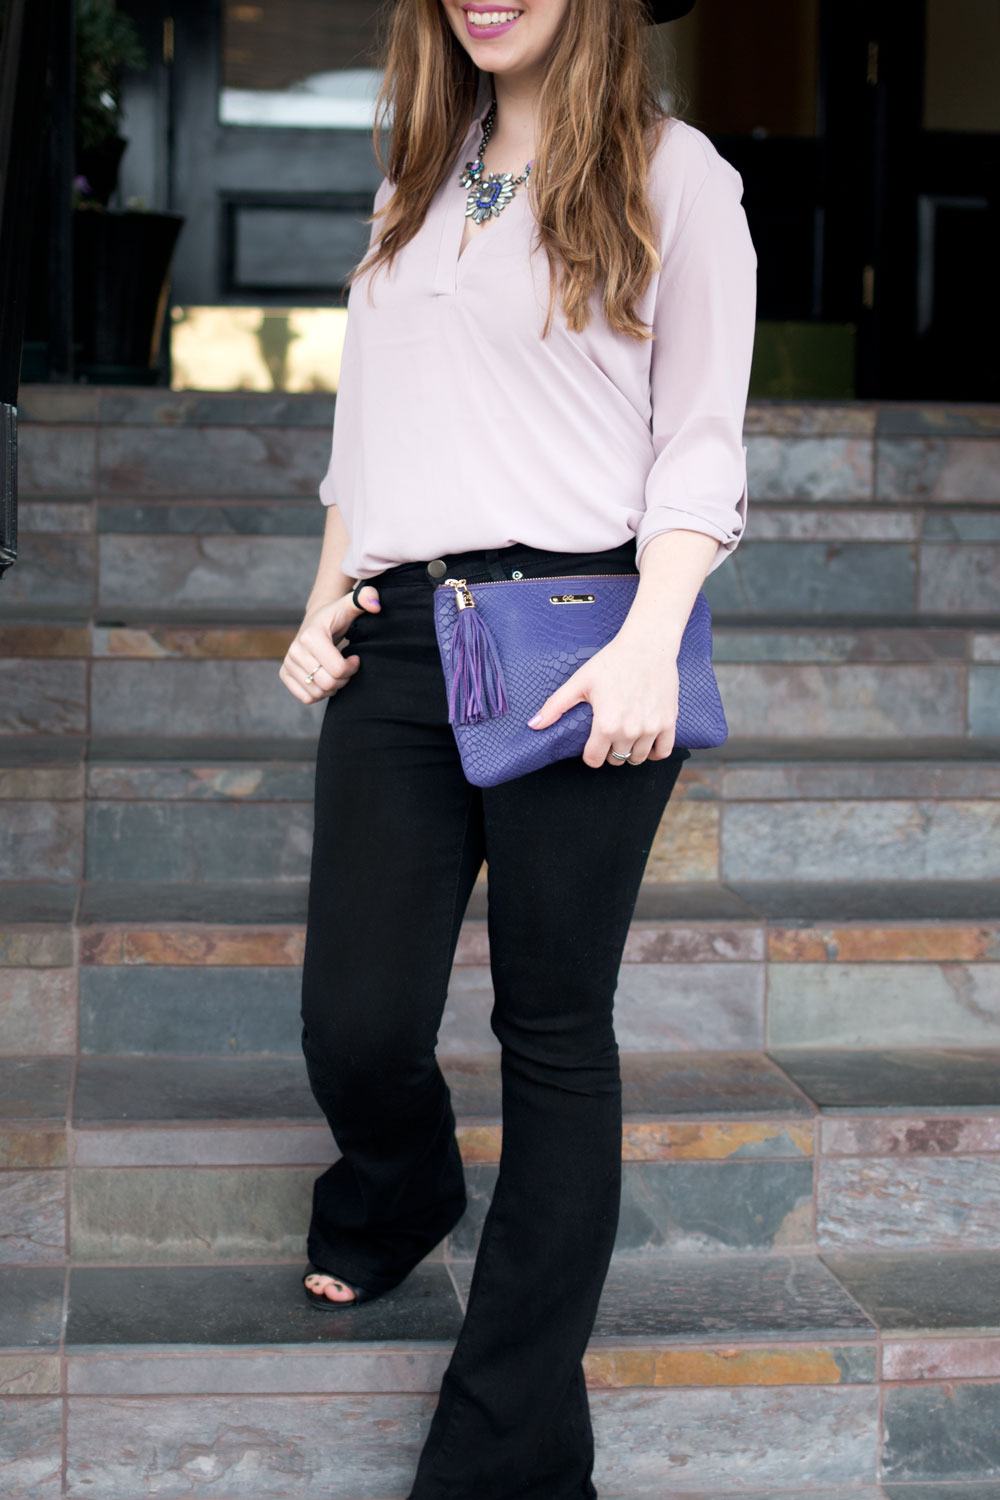 GiGi New York Purple Clutch, Flare Jeans, and Flowy Blouse Outfit / hellorigby seattle fashion blog